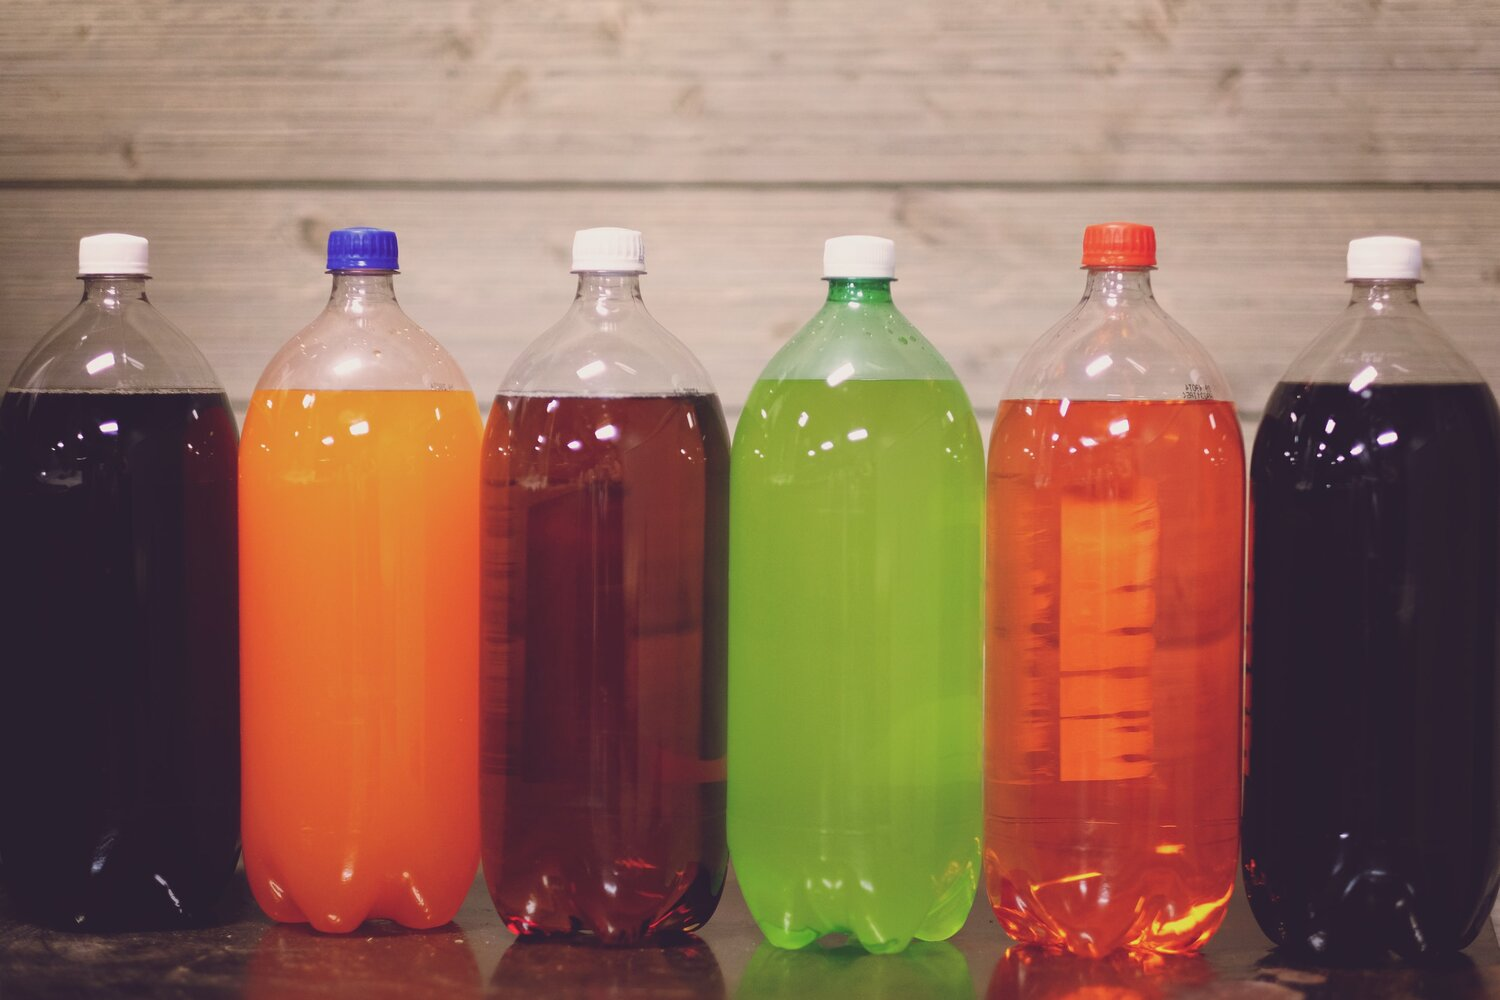 Sugar-sweetened drinks can double bowel cancer risk before age 50